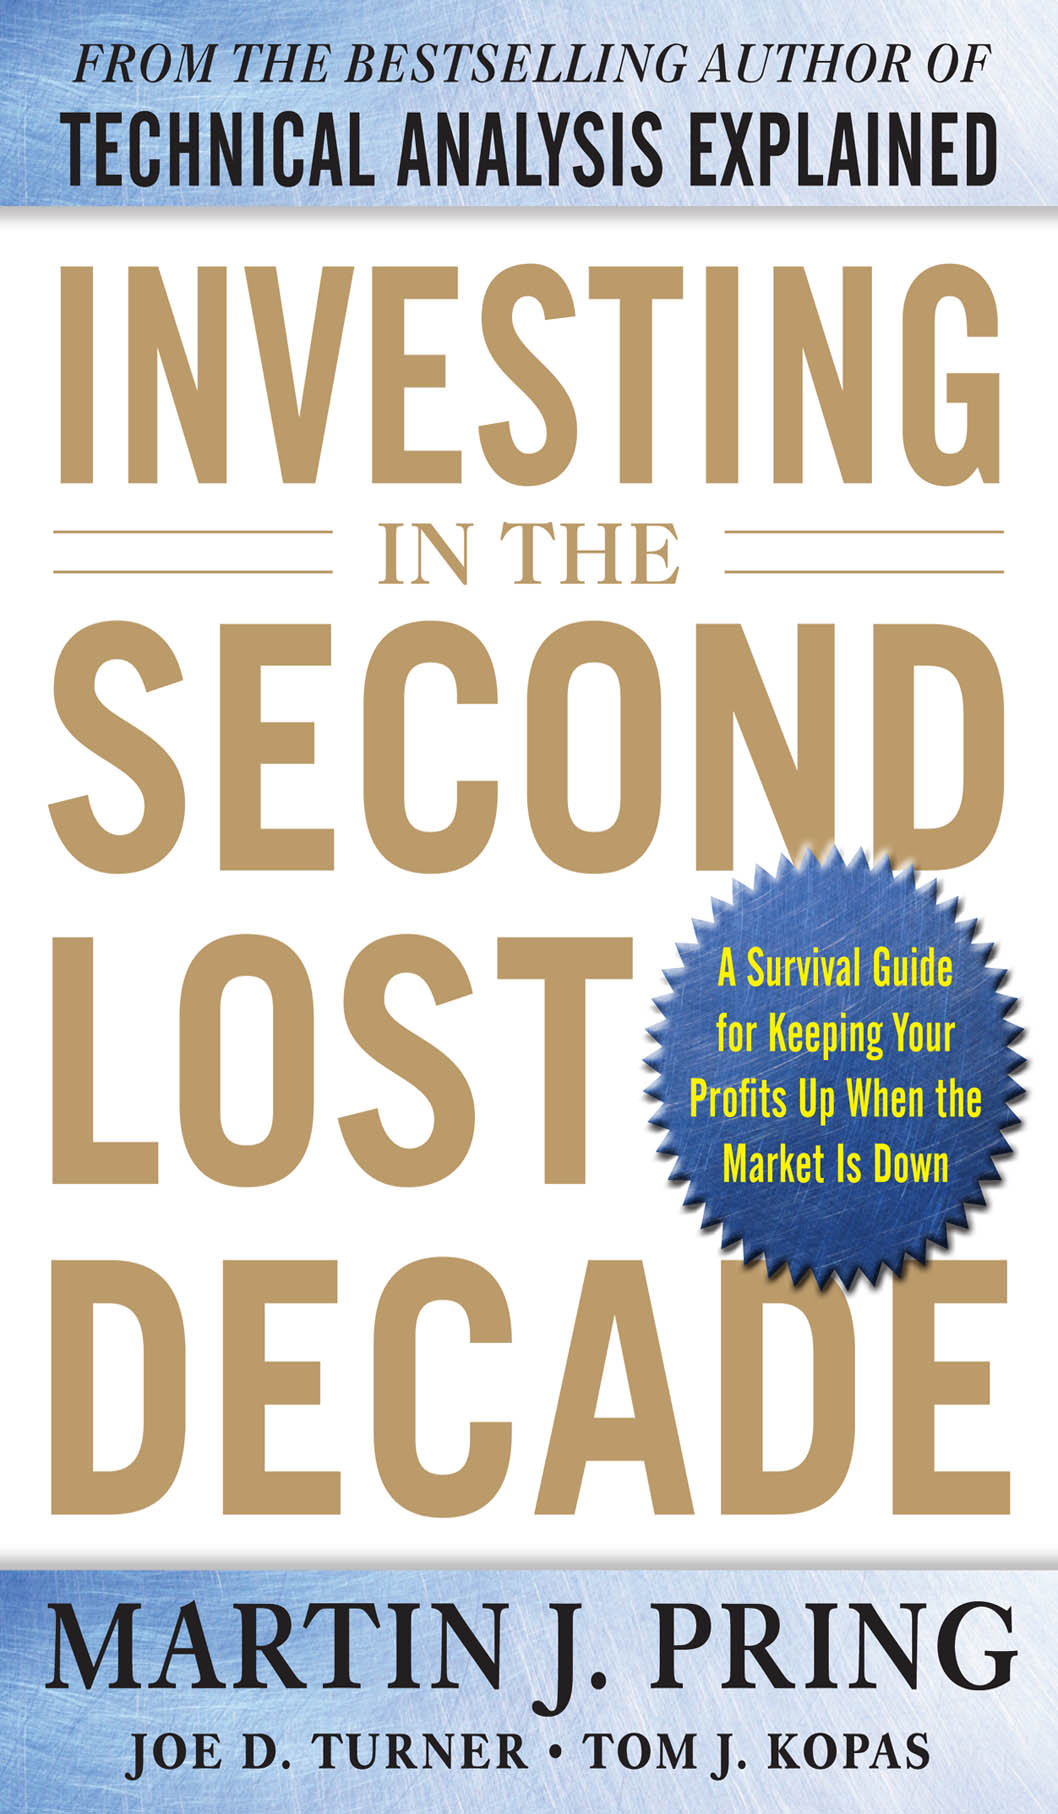 Investing in the Second Lost Decade: A Survival Guide for Keeping Your Profits Up When the Market Is Down By:  Joe D. Turner, Tom J. Kopas,Martin J. Pring